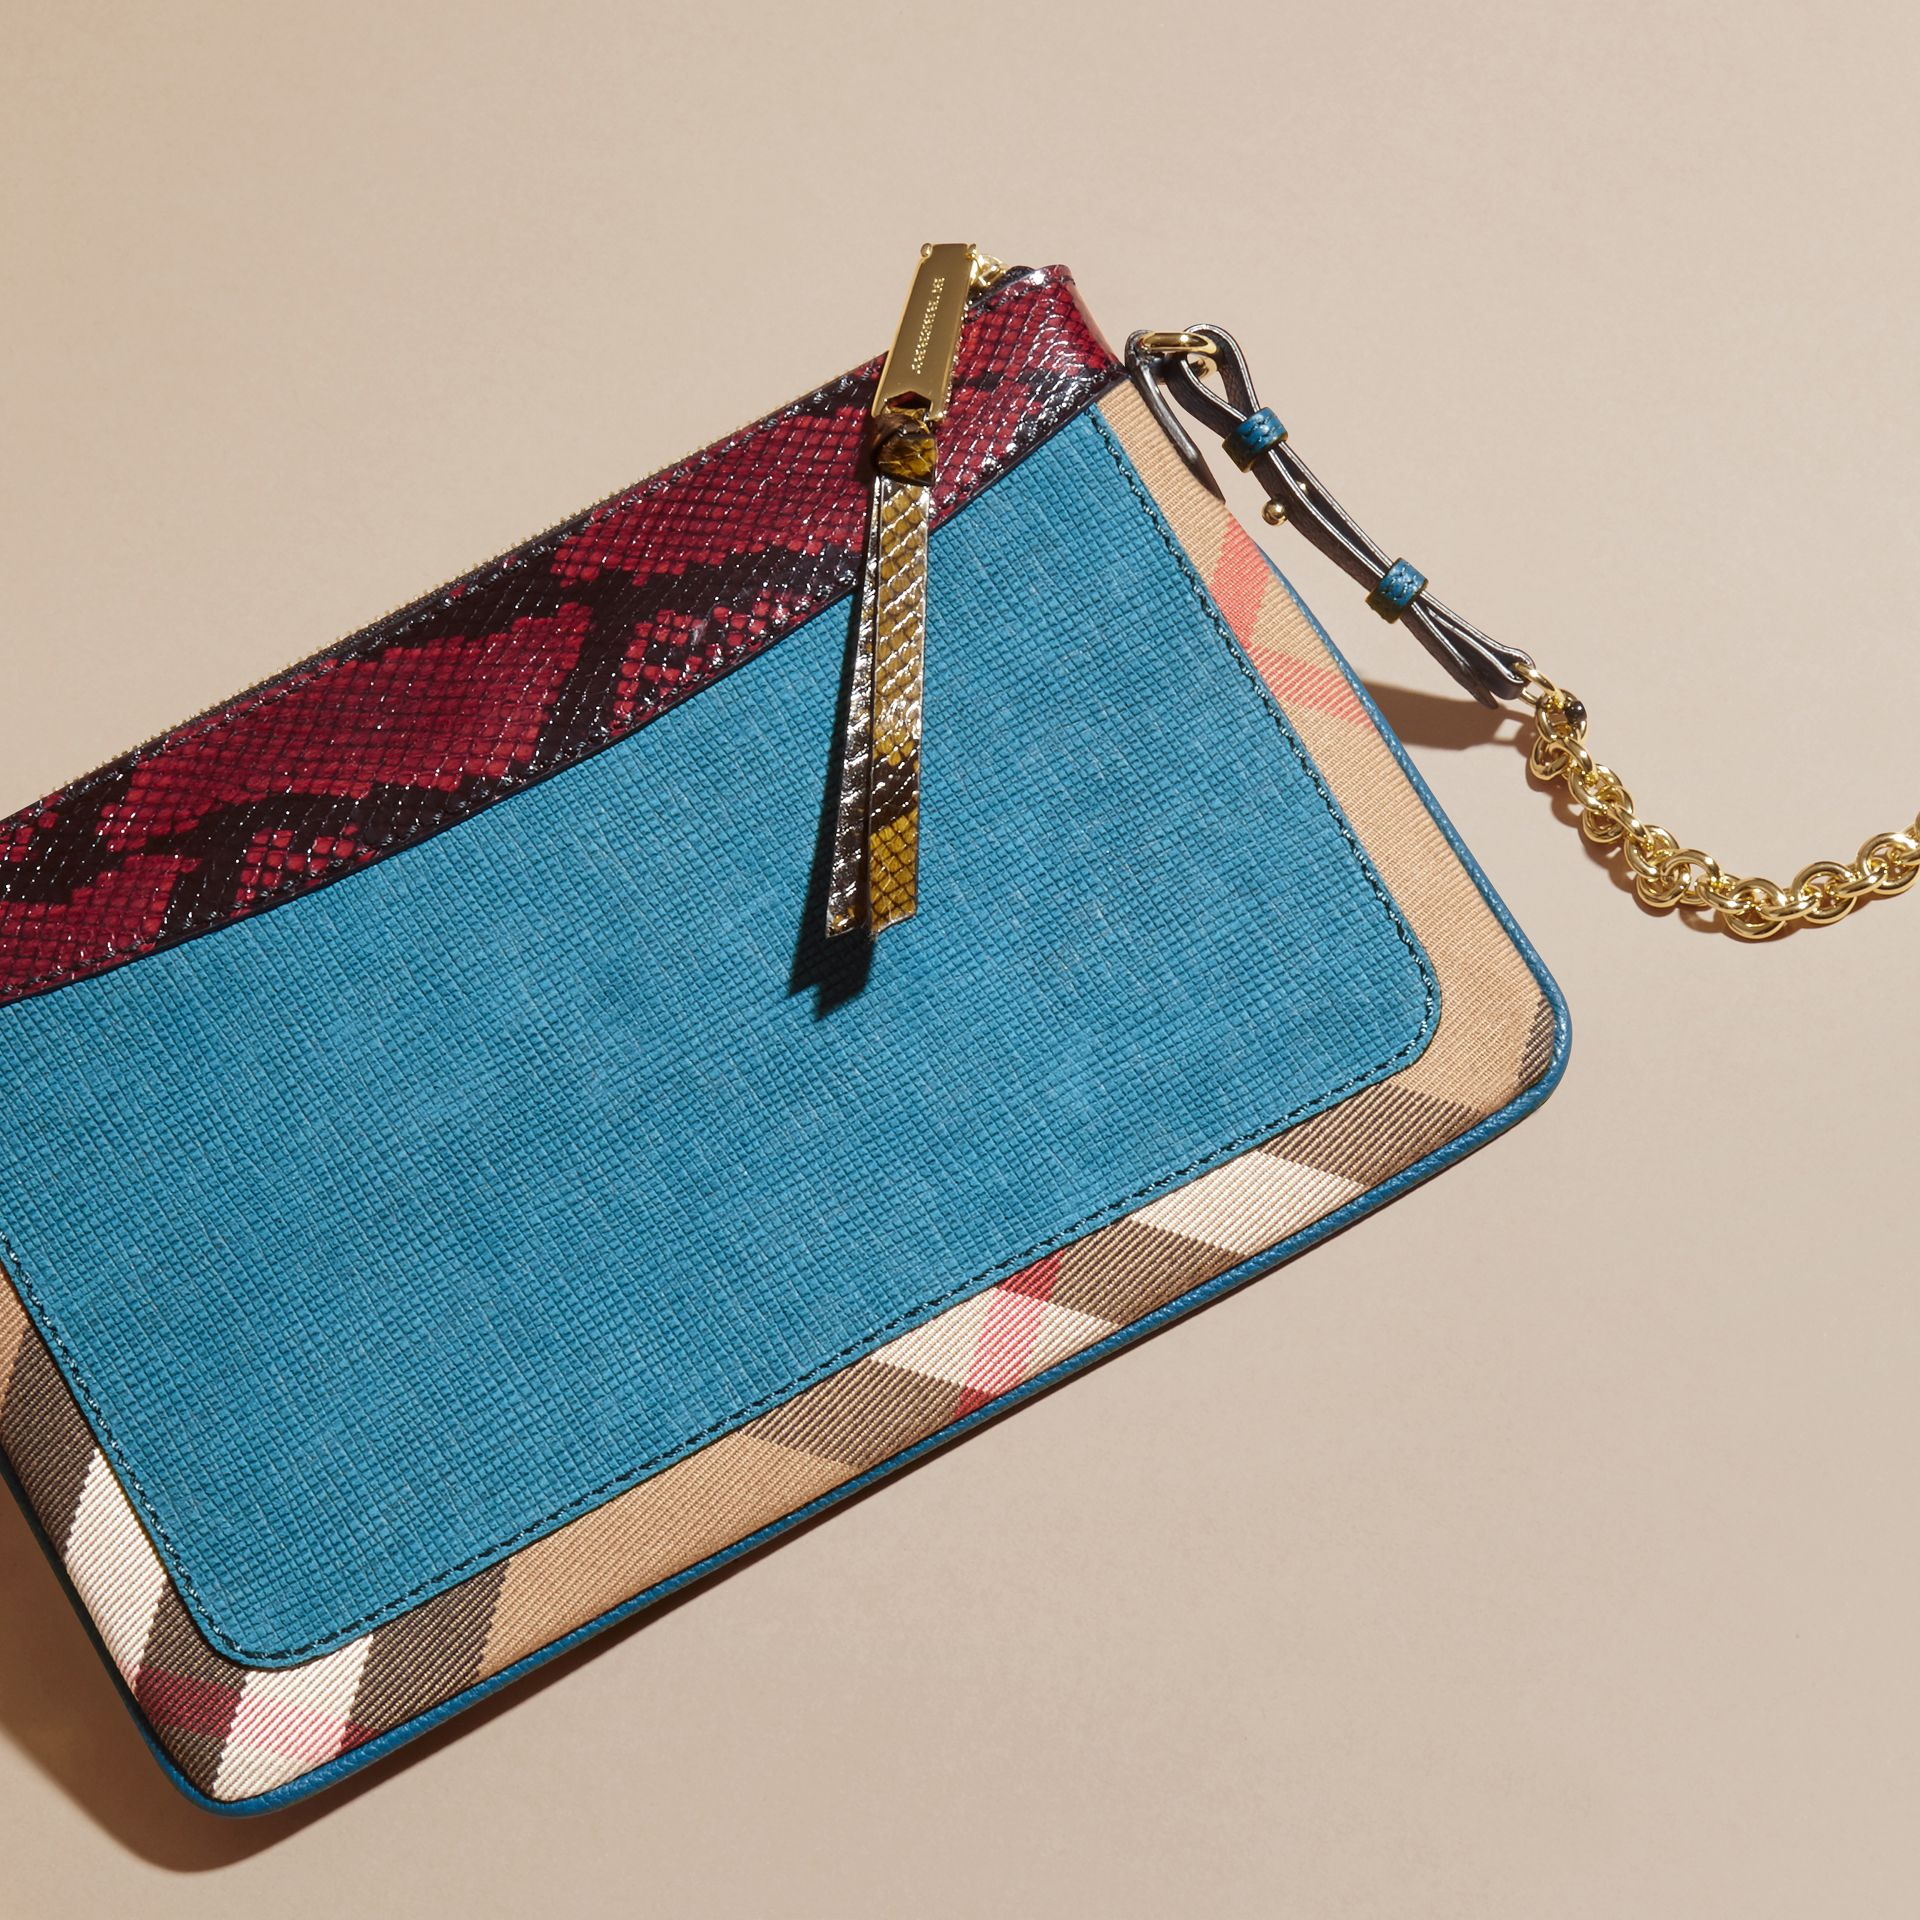 Leather, House Check and Snakeskin Clutch Bag in Peacock Blue - Women | Burberry - gallery image 5